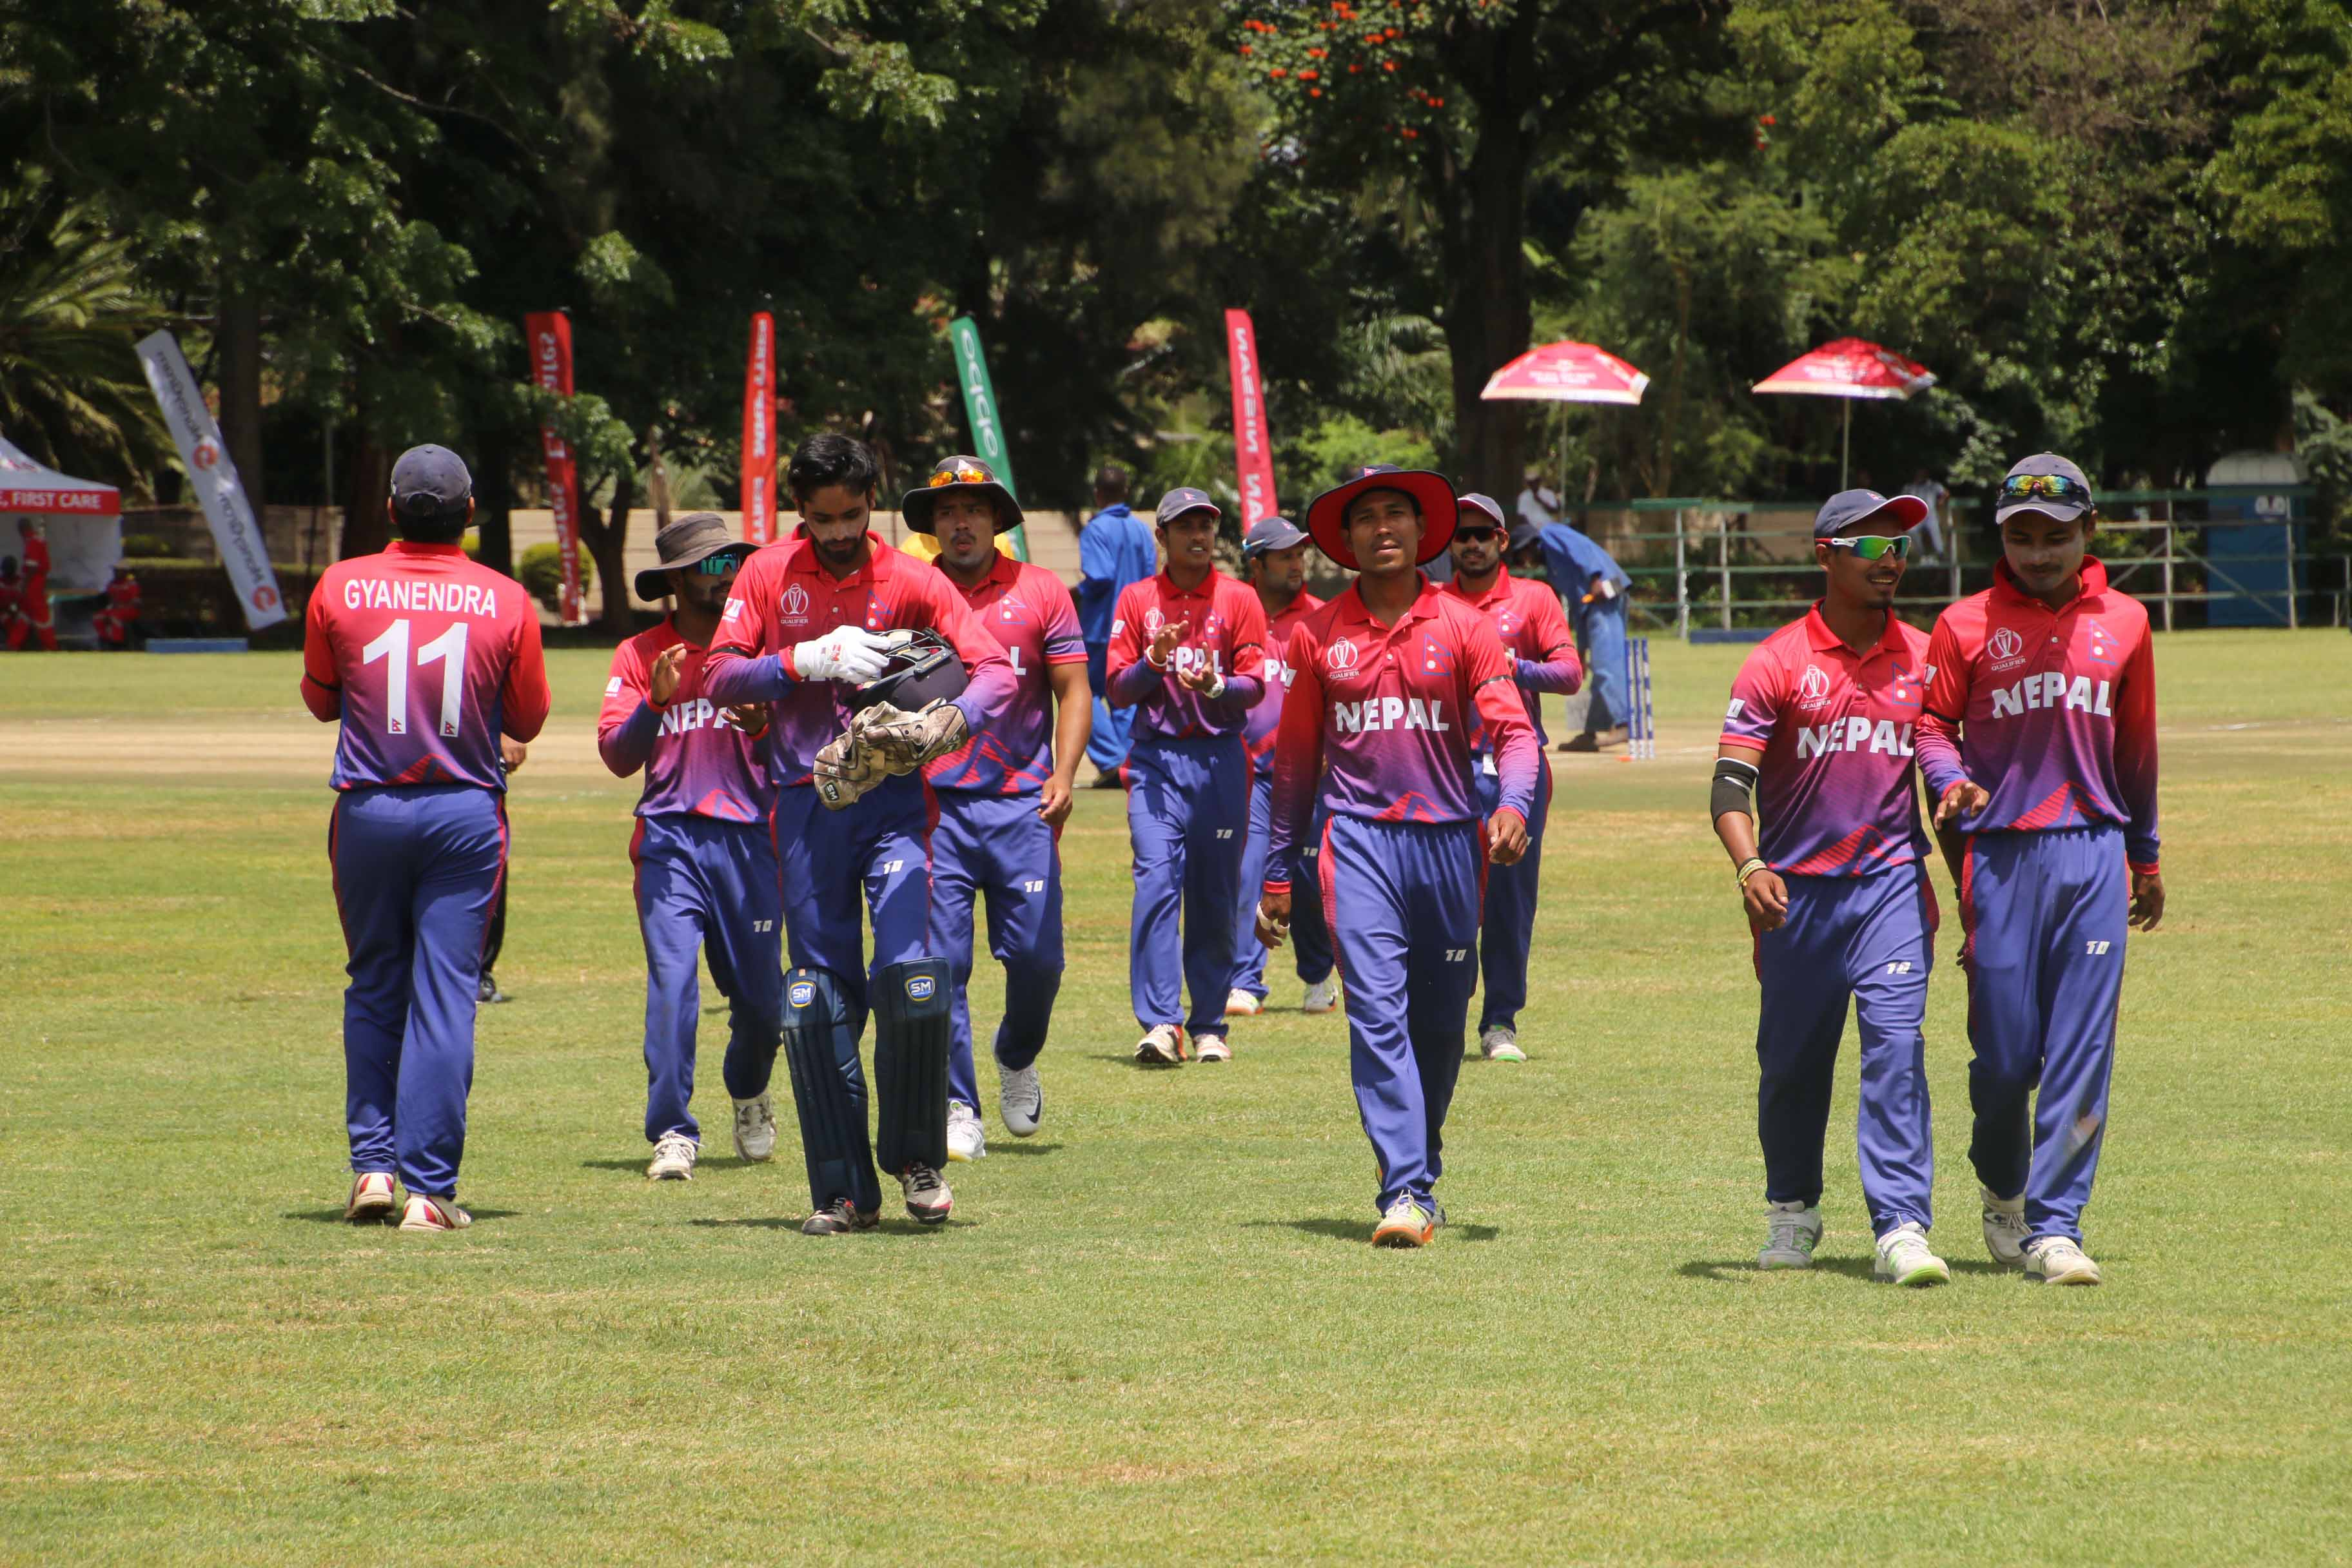 Nepal defeats PNG by 6 wickets